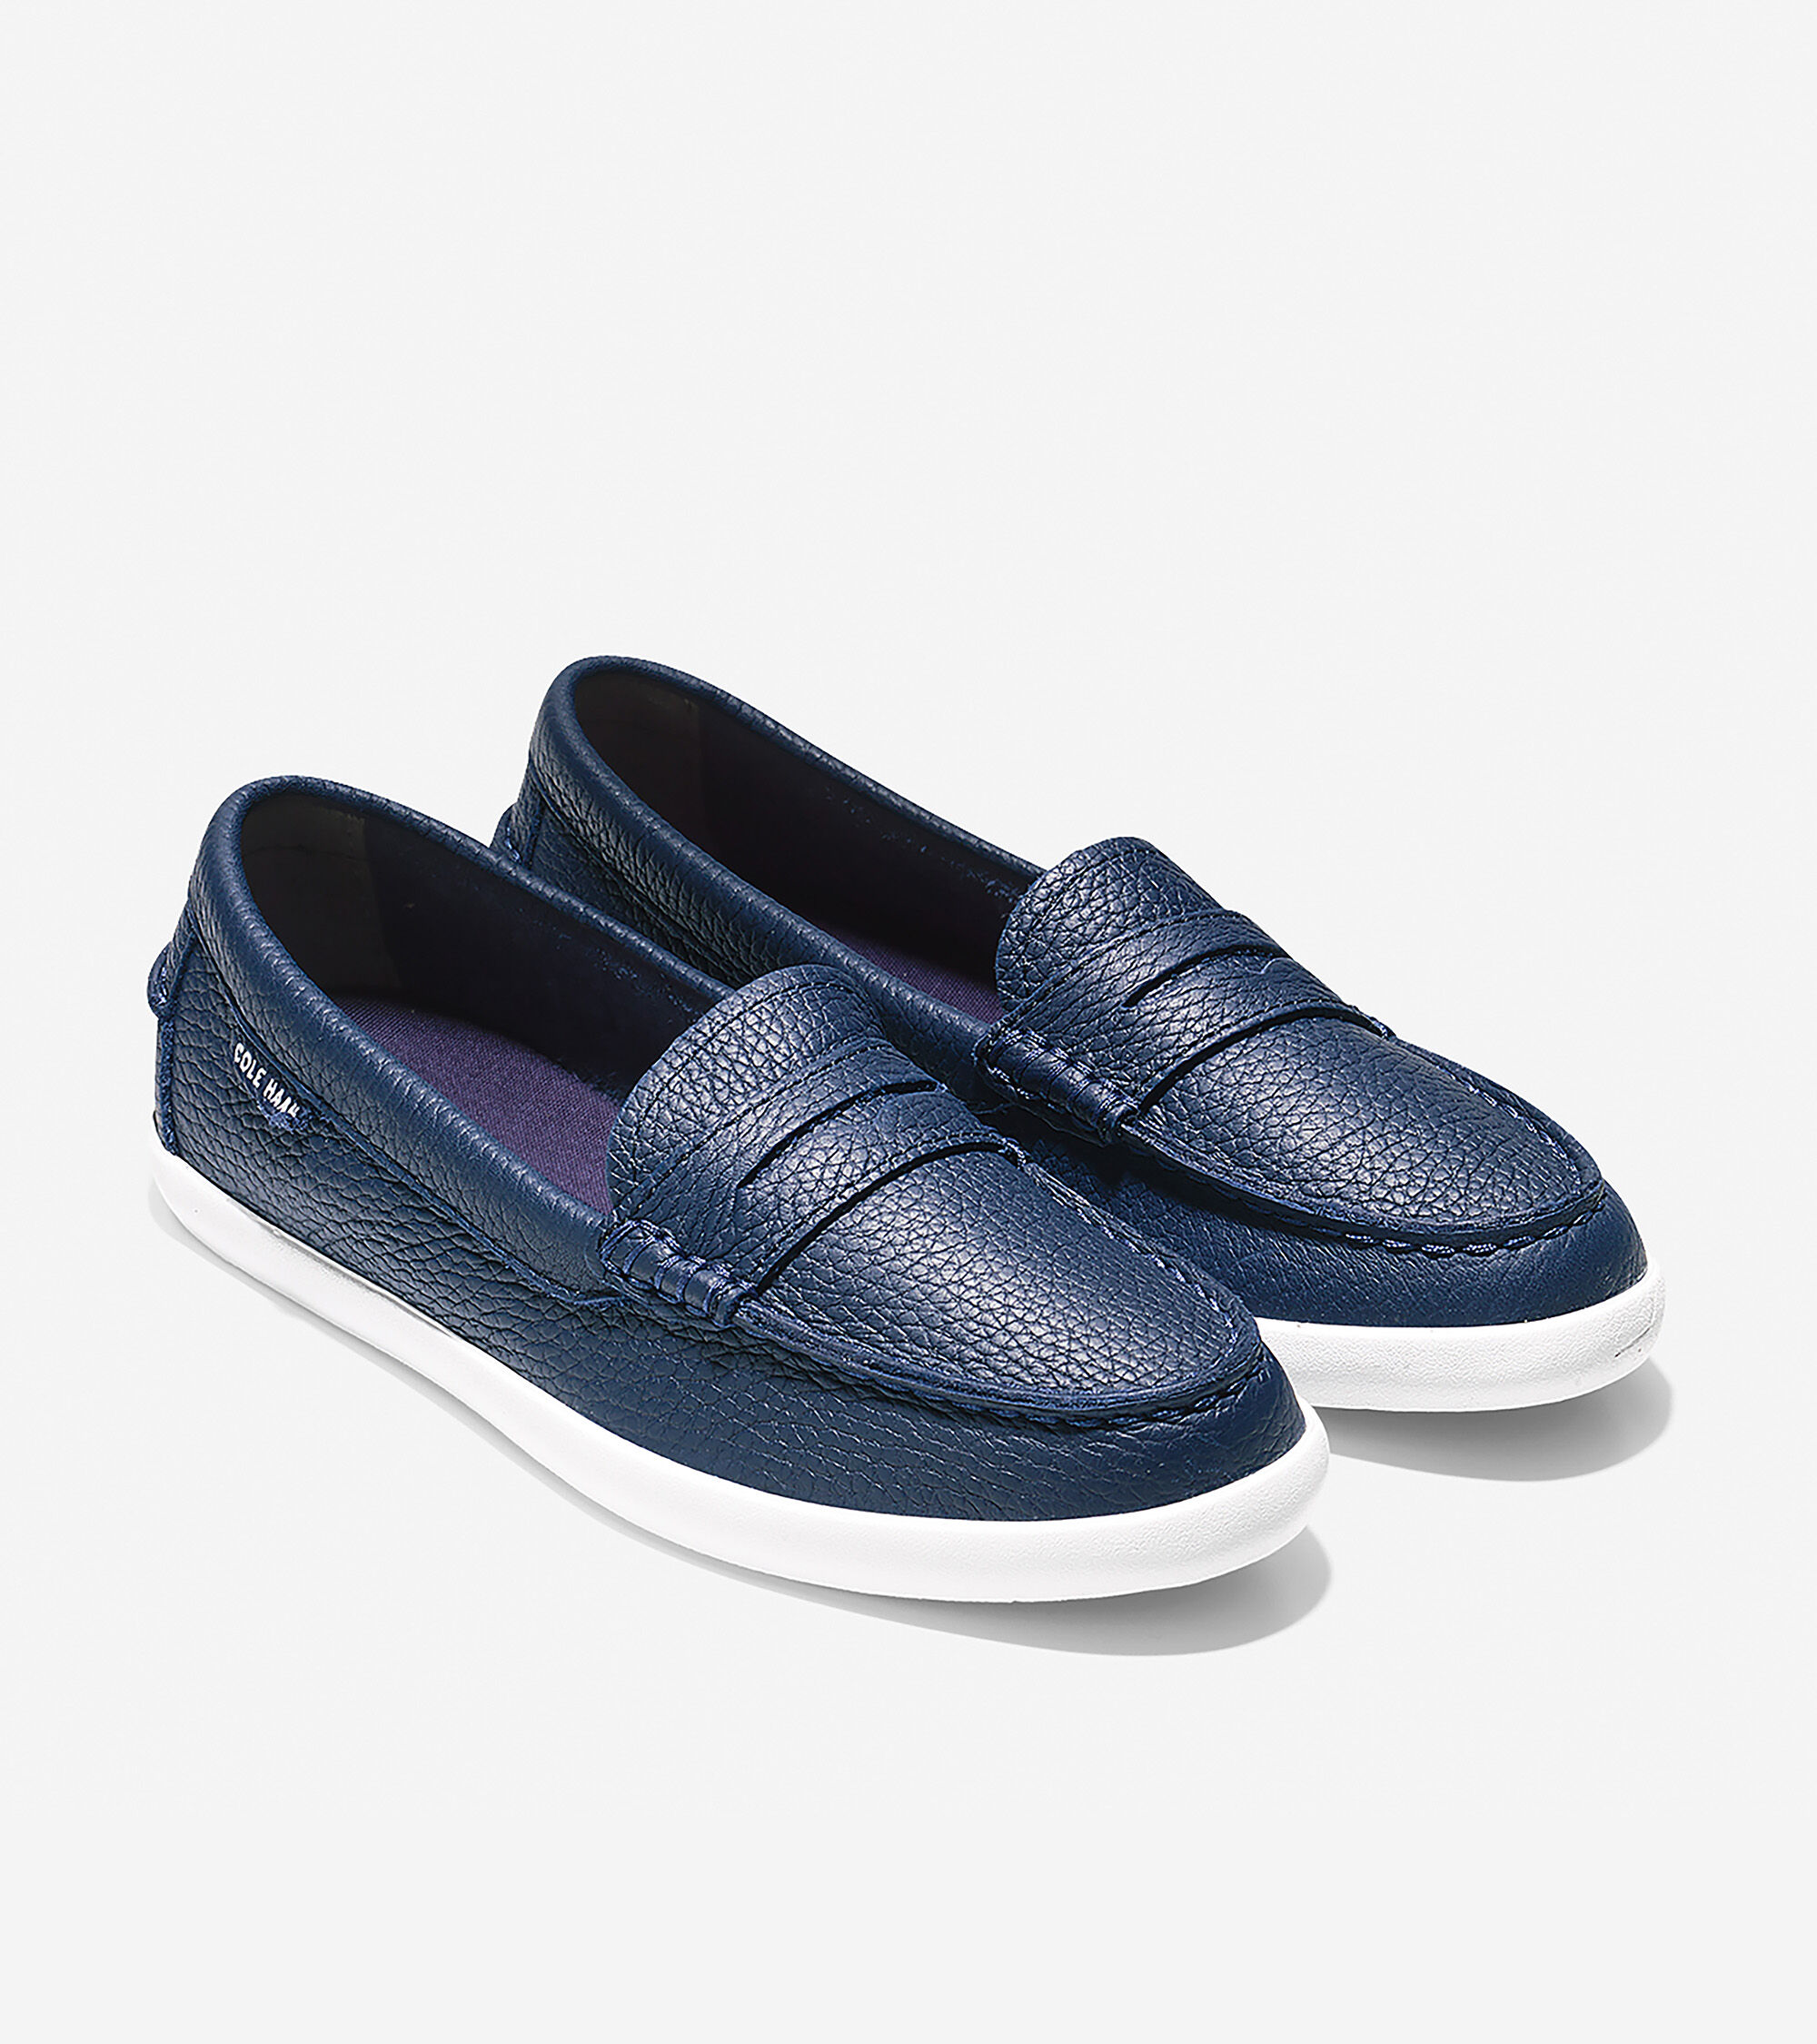 Nantucket Loafer in Peacoat Leather